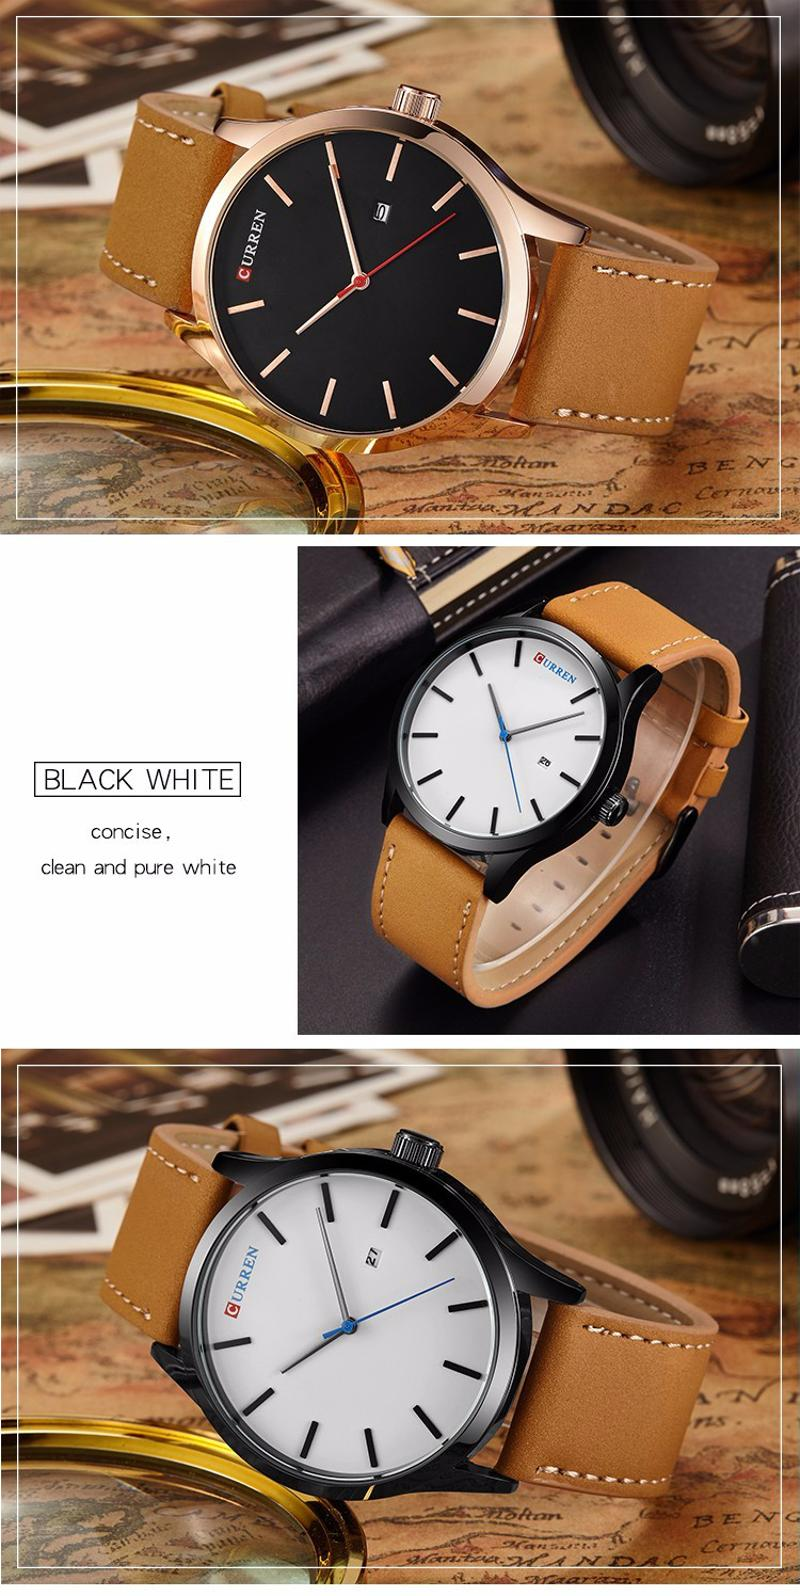 CURREN 8214 Fashion Leather Strap Men Quartz Watch Casual Date Display Sport Watch